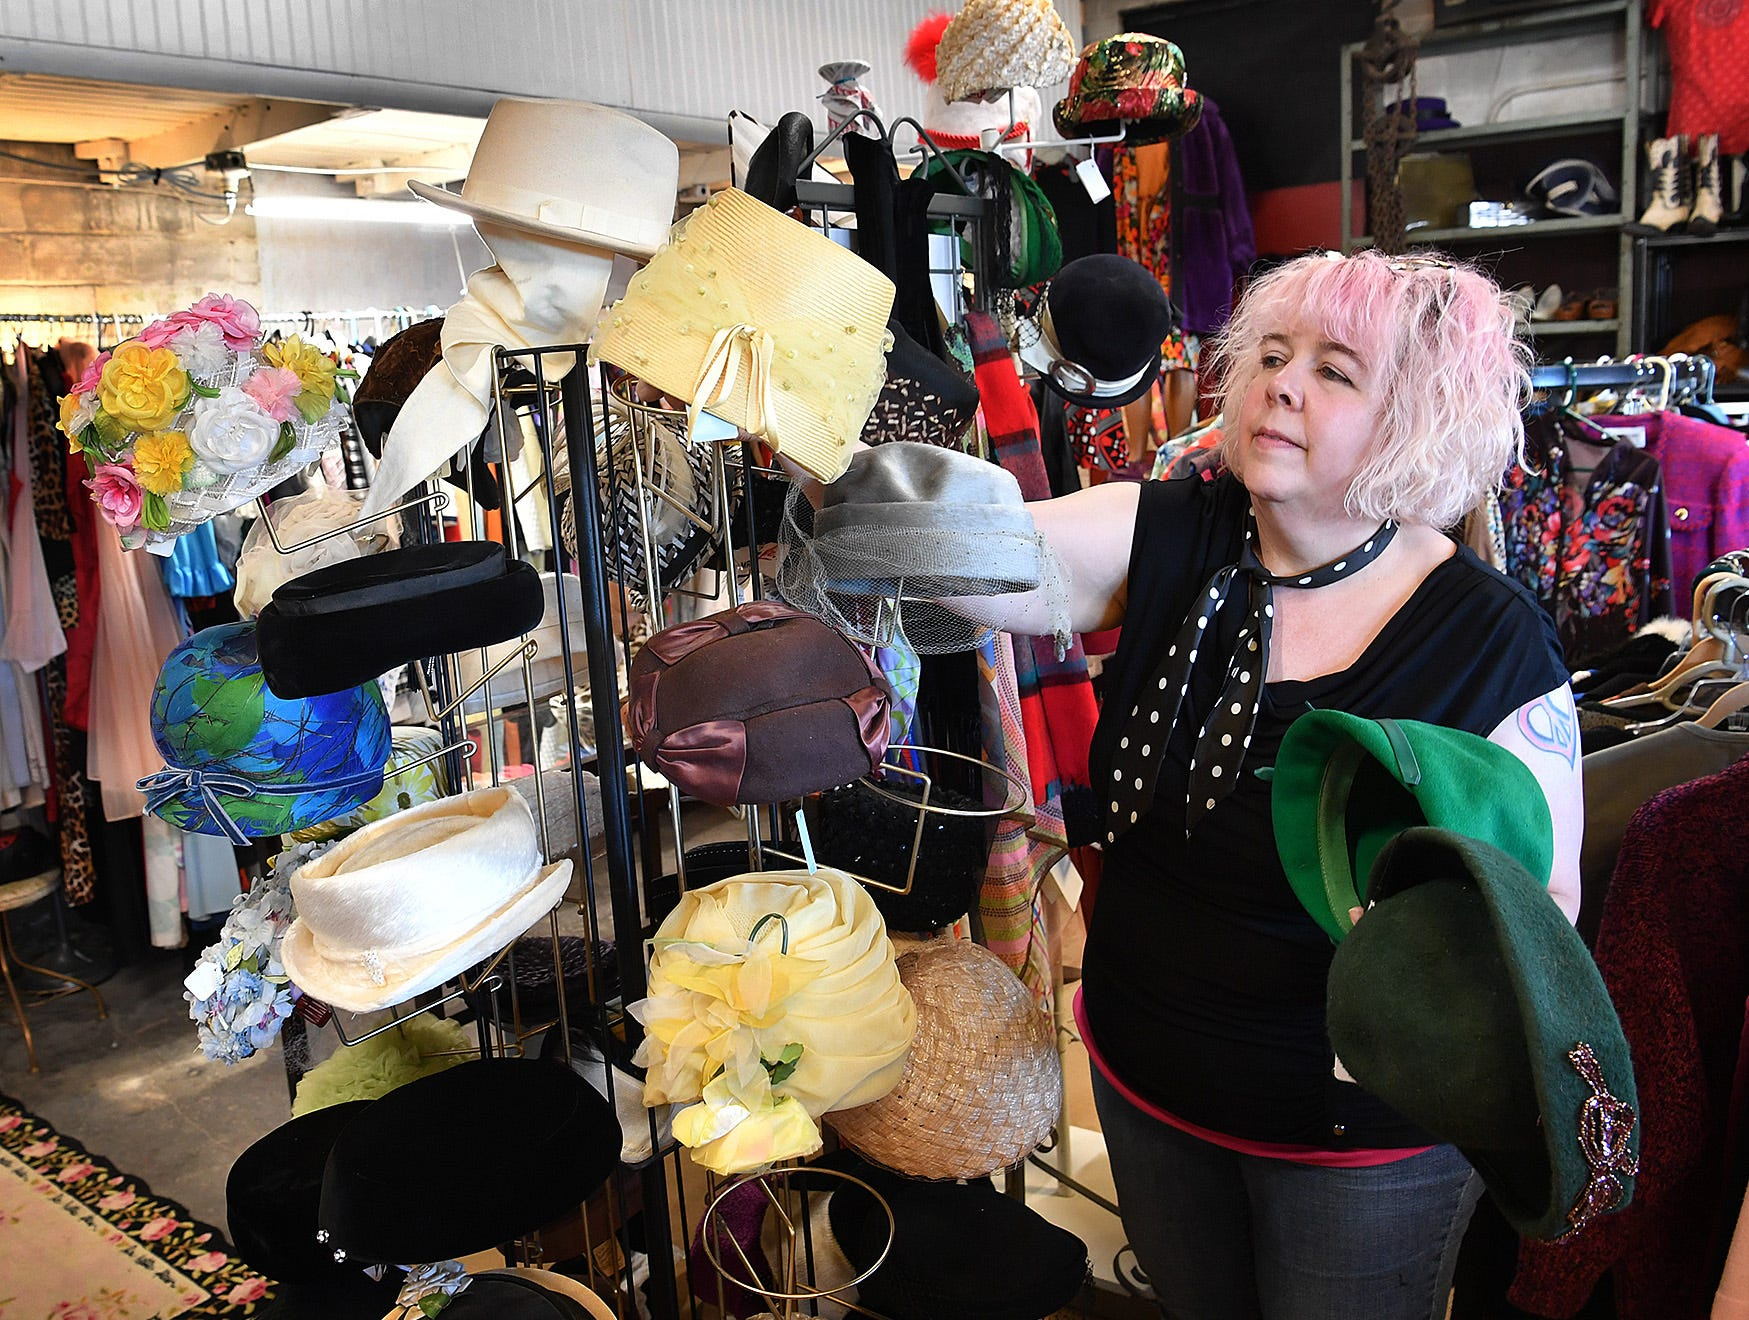 Janet Ehling of Fashion Garage sets up a display of vintage hats at her new store located at the former Gragg Motor Company on Lamar.